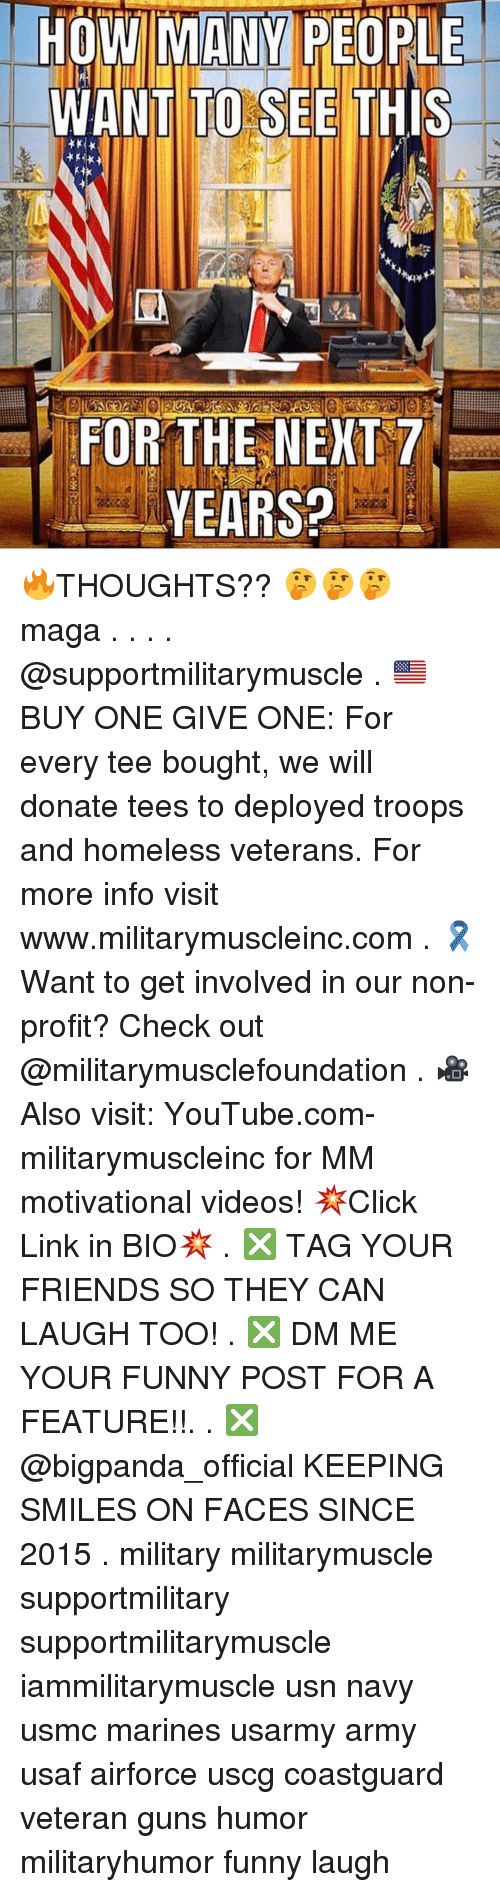 funny post: HOW MANY PEOPLE  WANT TO SEE THIS  K1  FOR THEI EXT 7  YEARS? 🔥THOUGHTS?? 🤔🤔🤔 maga . . . . @supportmilitarymuscle . 🇺🇸BUY ONE GIVE ONE: For every tee bought, we will donate tees to deployed troops and homeless veterans. For more info visit www.militarymuscleinc.com . 🎗Want to get involved in our non-profit? Check out @militarymusclefoundation . 🎥Also visit: YouTube.com-militarymuscleinc for MM motivational videos! 💥Click Link in BIO💥 . ❎ TAG YOUR FRIENDS SO THEY CAN LAUGH TOO! . ❎ DM ME YOUR FUNNY POST FOR A FEATURE!!. . ❎ @bigpanda_official KEEPING SMILES ON FACES SINCE 2015 . military militarymuscle supportmilitary supportmilitarymuscle iammilitarymuscle usn navy usmc marines usarmy army usaf airforce uscg coastguard veteran guns humor militaryhumor funny laugh